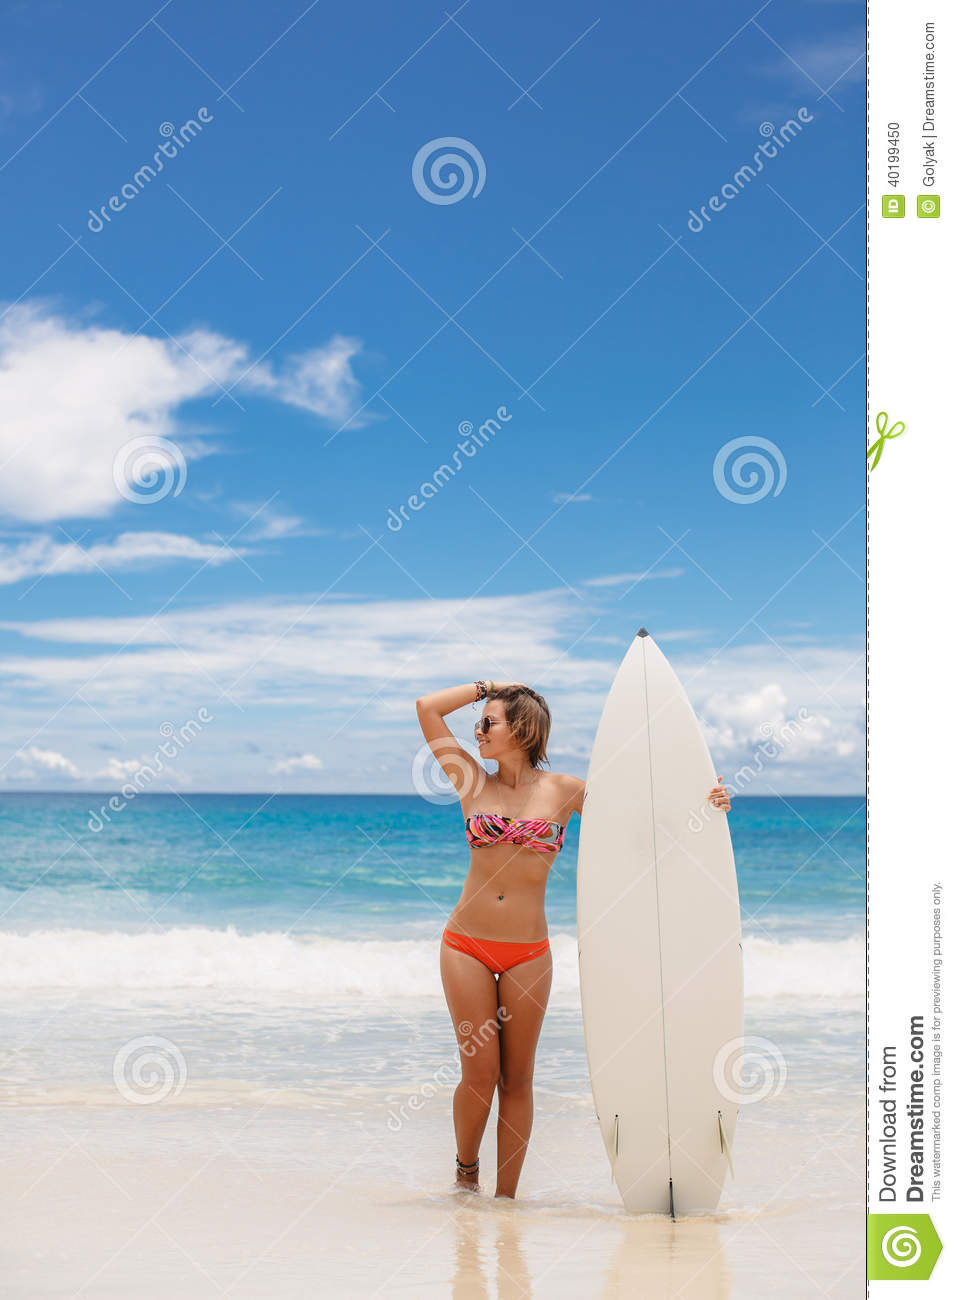 Surfing beautiful woman on the beach